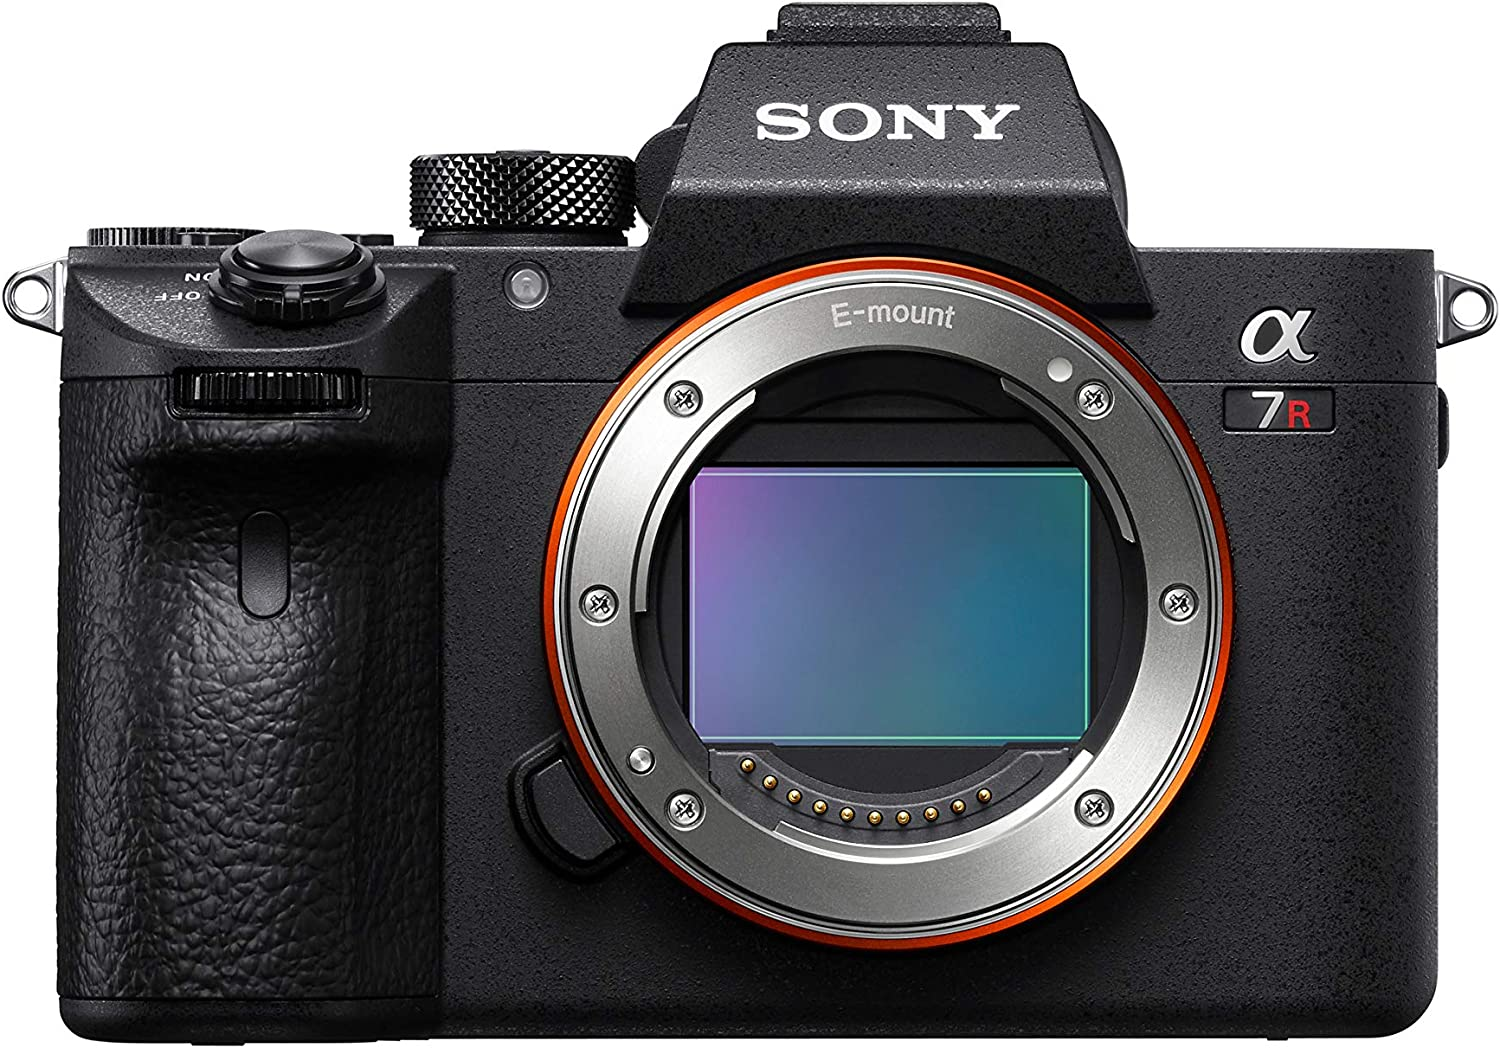 Sony a7R Mark III: One of the Best Cameras for Movie Making